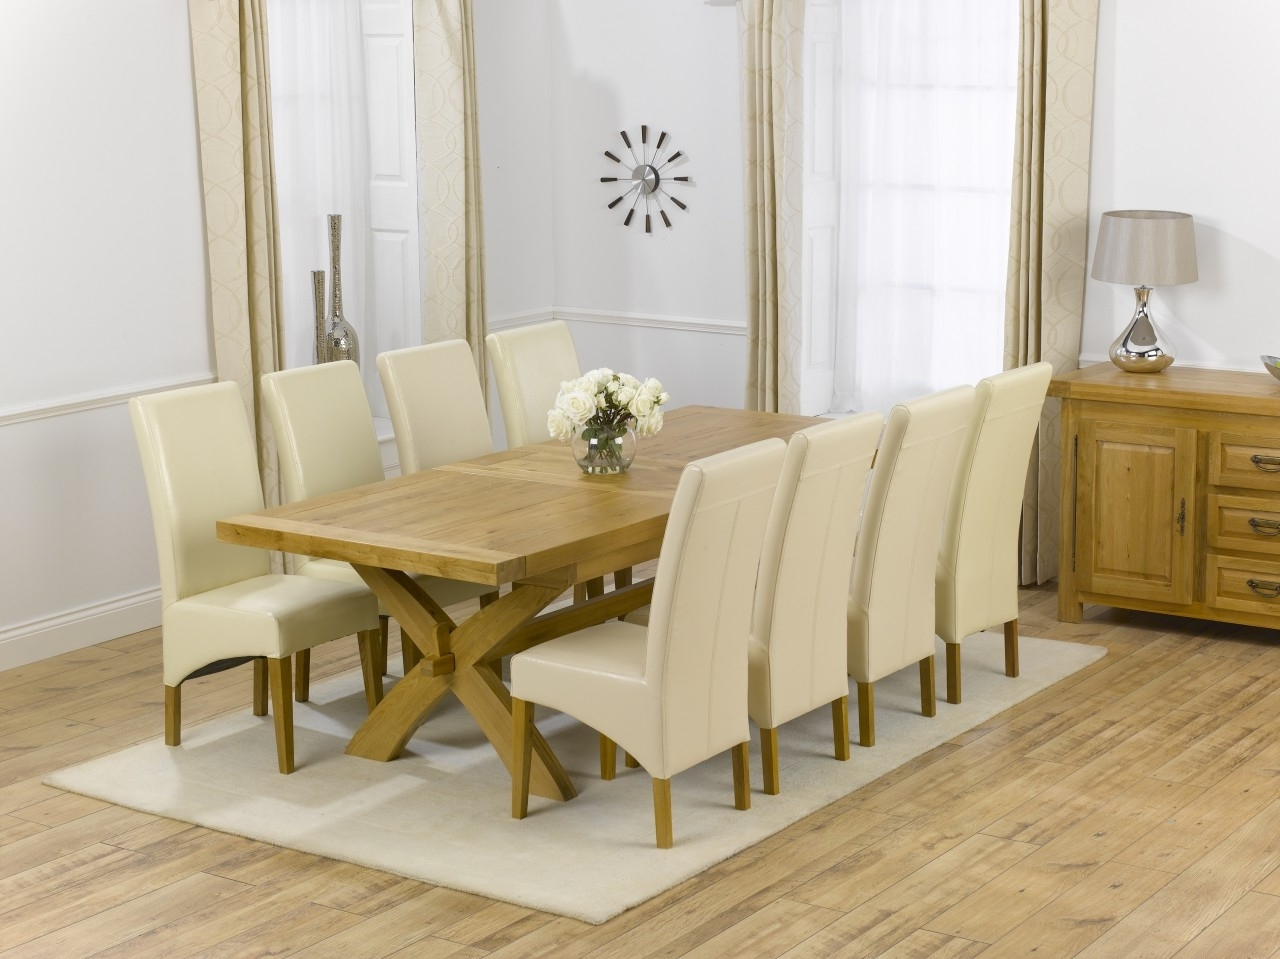 Roma Dining Tables And Chairs Sets Regarding Most Recently Released Canterbury Solid Oak Dining Table + 8 Roma Dining Chair Dining Set (View 18 of 25)